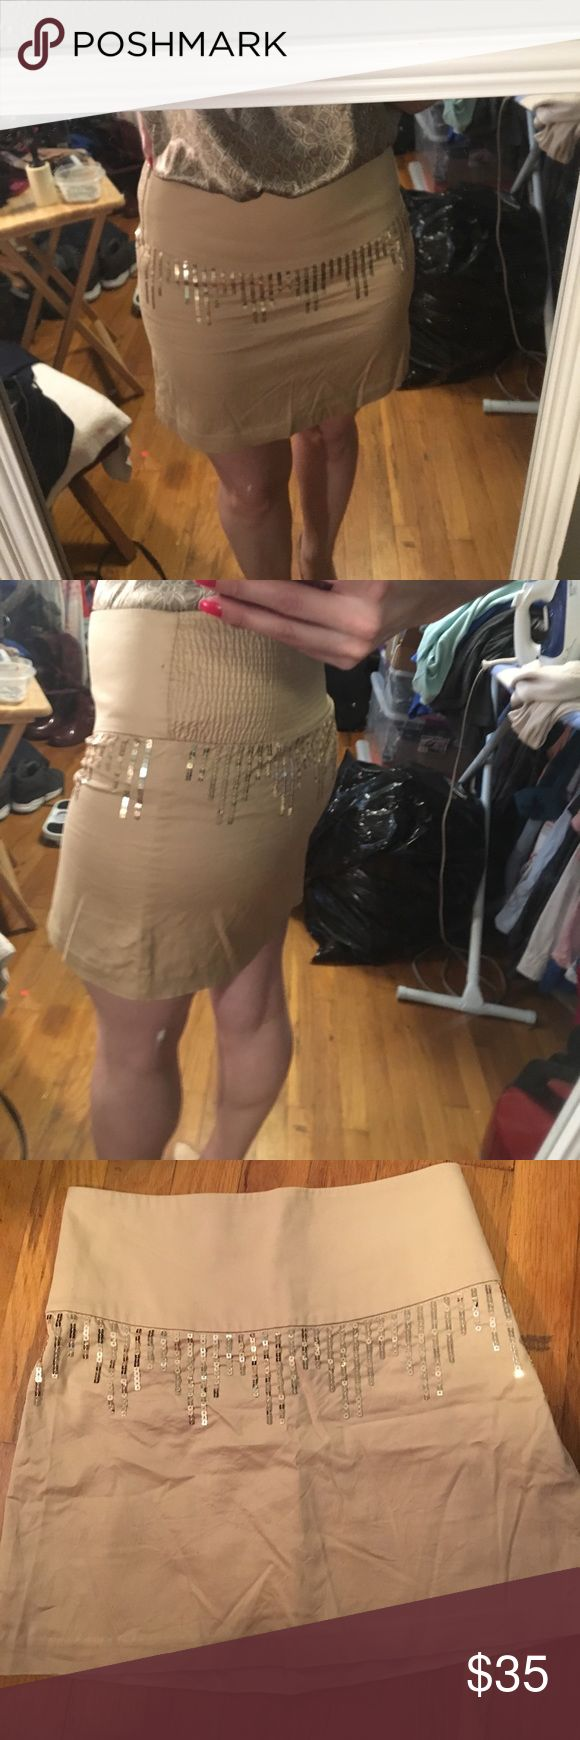 """Gold sequin Free People Skirt size 4 This is a beautiful skirt!! It's a light gold/tan with gold sequins. Size 4, with stretch to it. The back also has extra stretch to it. As shown in the photos. This is a great """"night out"""" skirt, or can be worn with flats for a daytime look. Free People Skirts Mini"""